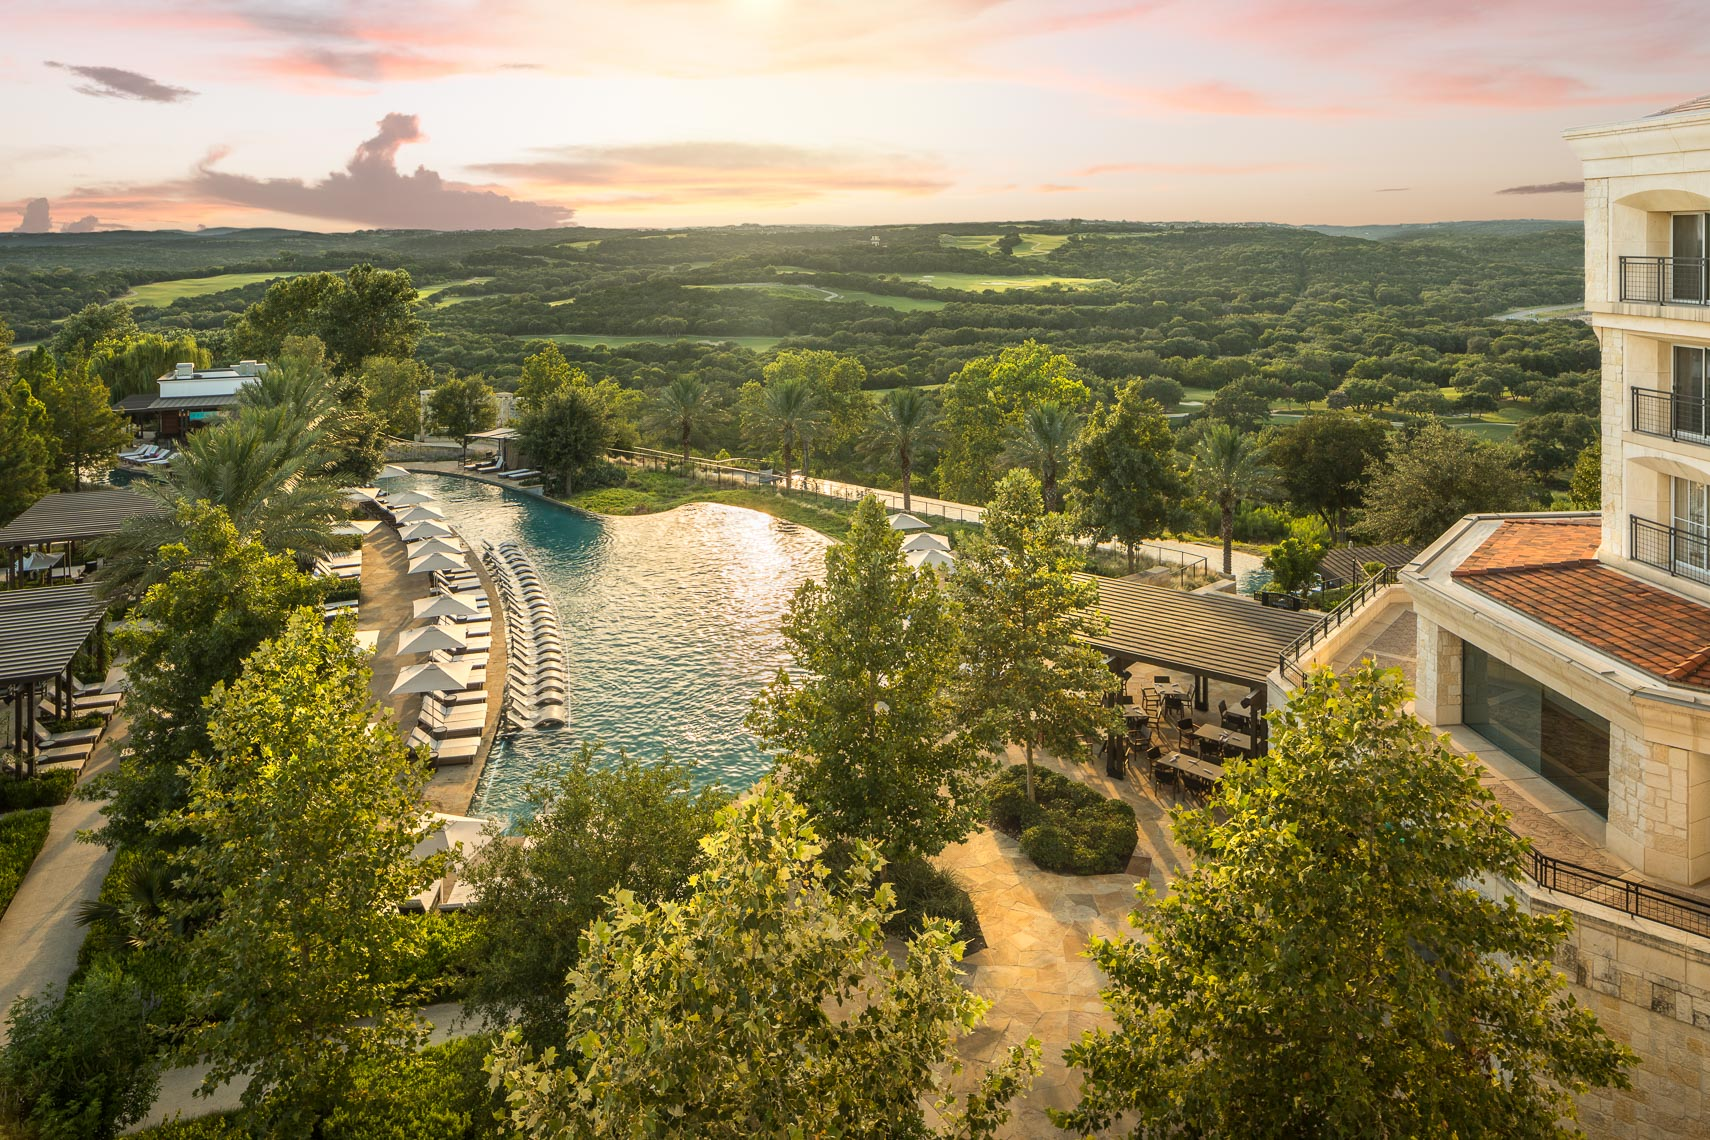 la-cantera-pool-hill-country-jason-risner-photography